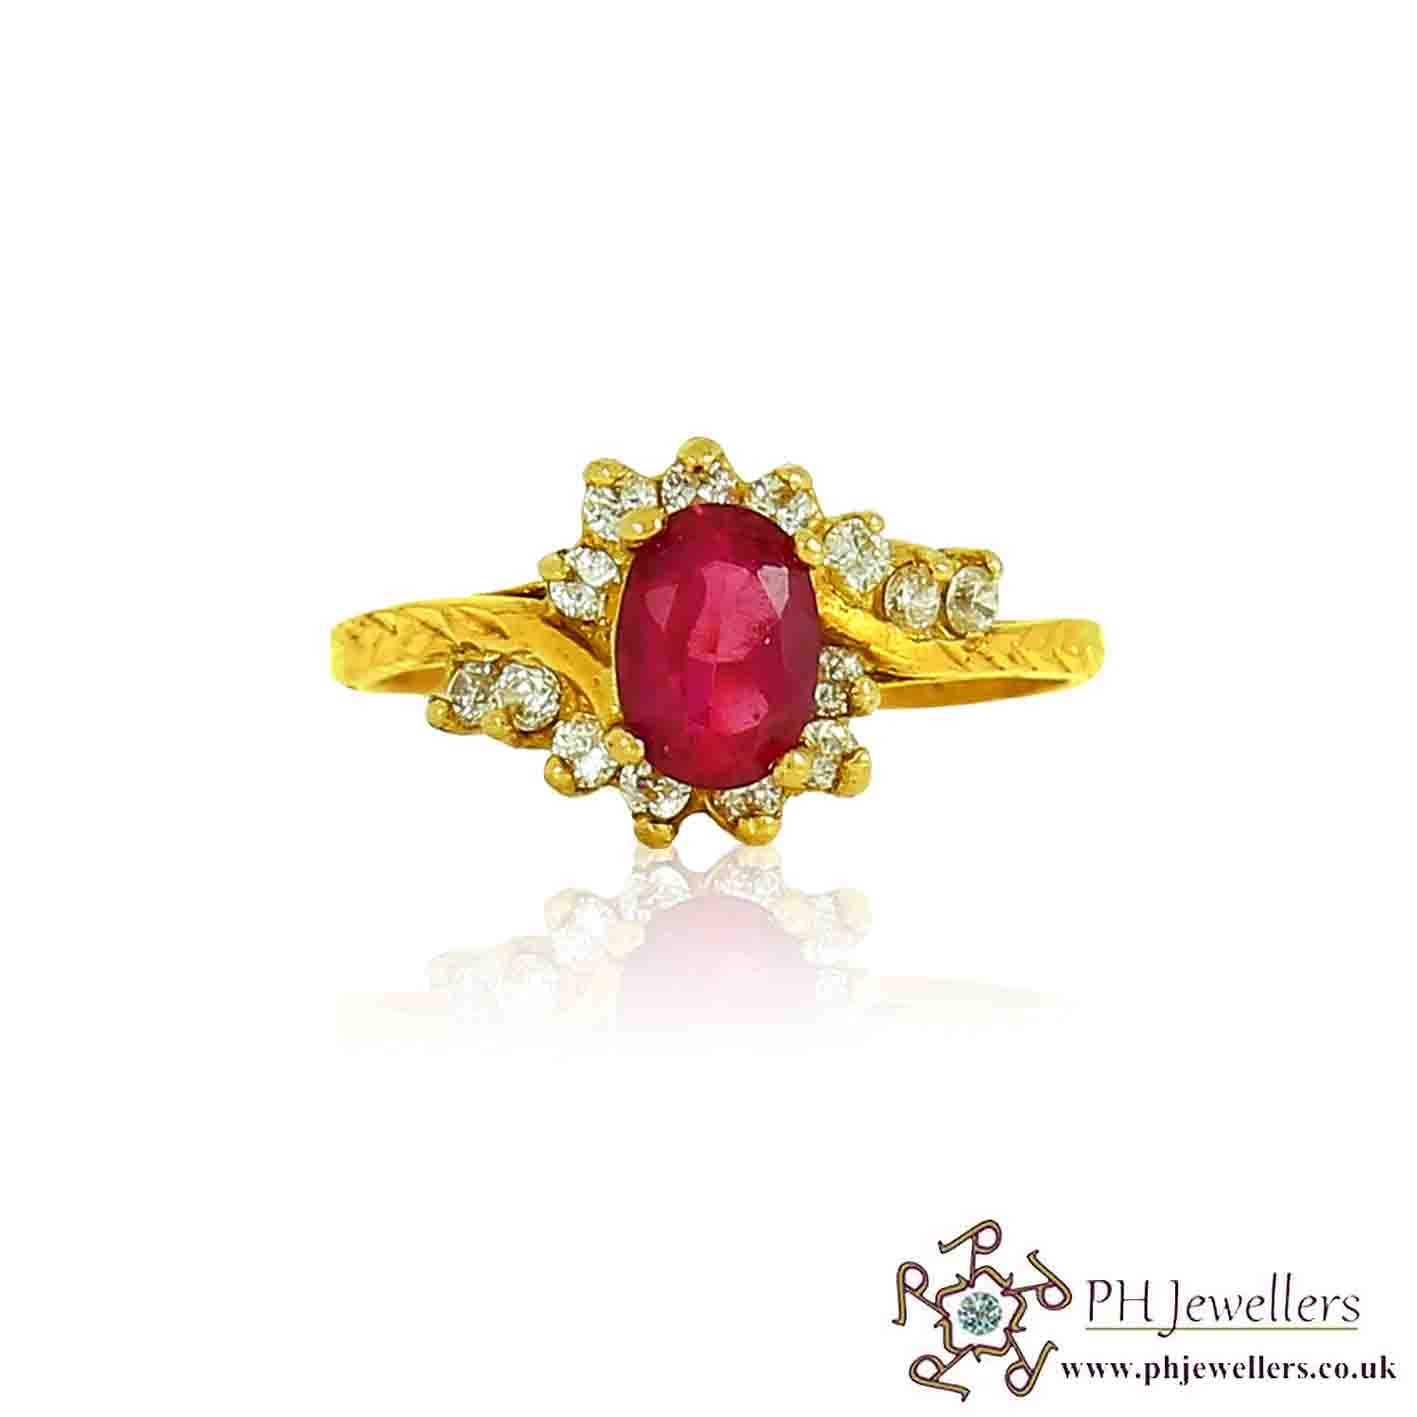 22ct 916 Hallmark Yellow Gold Oval Ruby Size O,P Ring CZ SR95